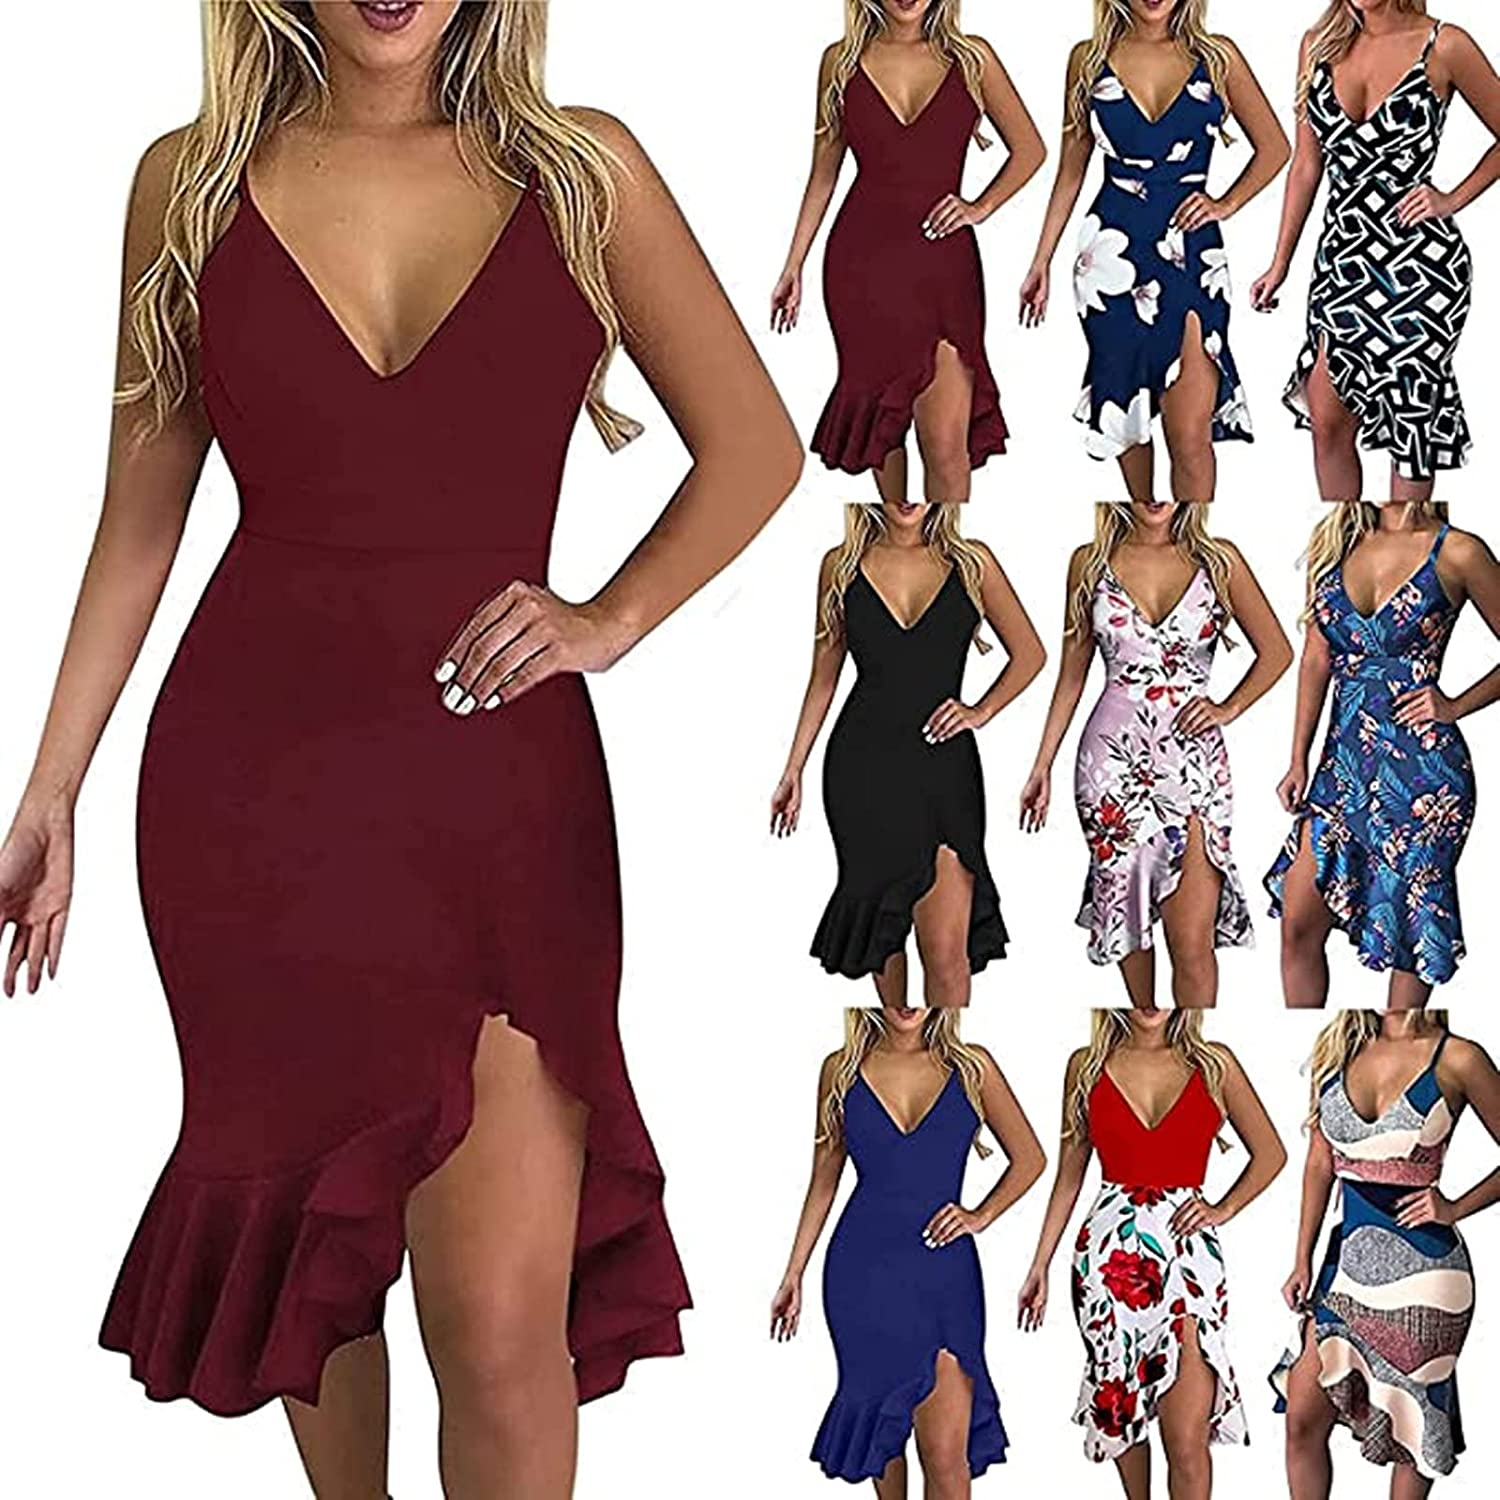 ORT Sexy Dresses for Dinner Date, Women's Sexy See Through Drawstring Ruched Slim Dress Sheer Mesh Printed Mini Bodycon Party Dress